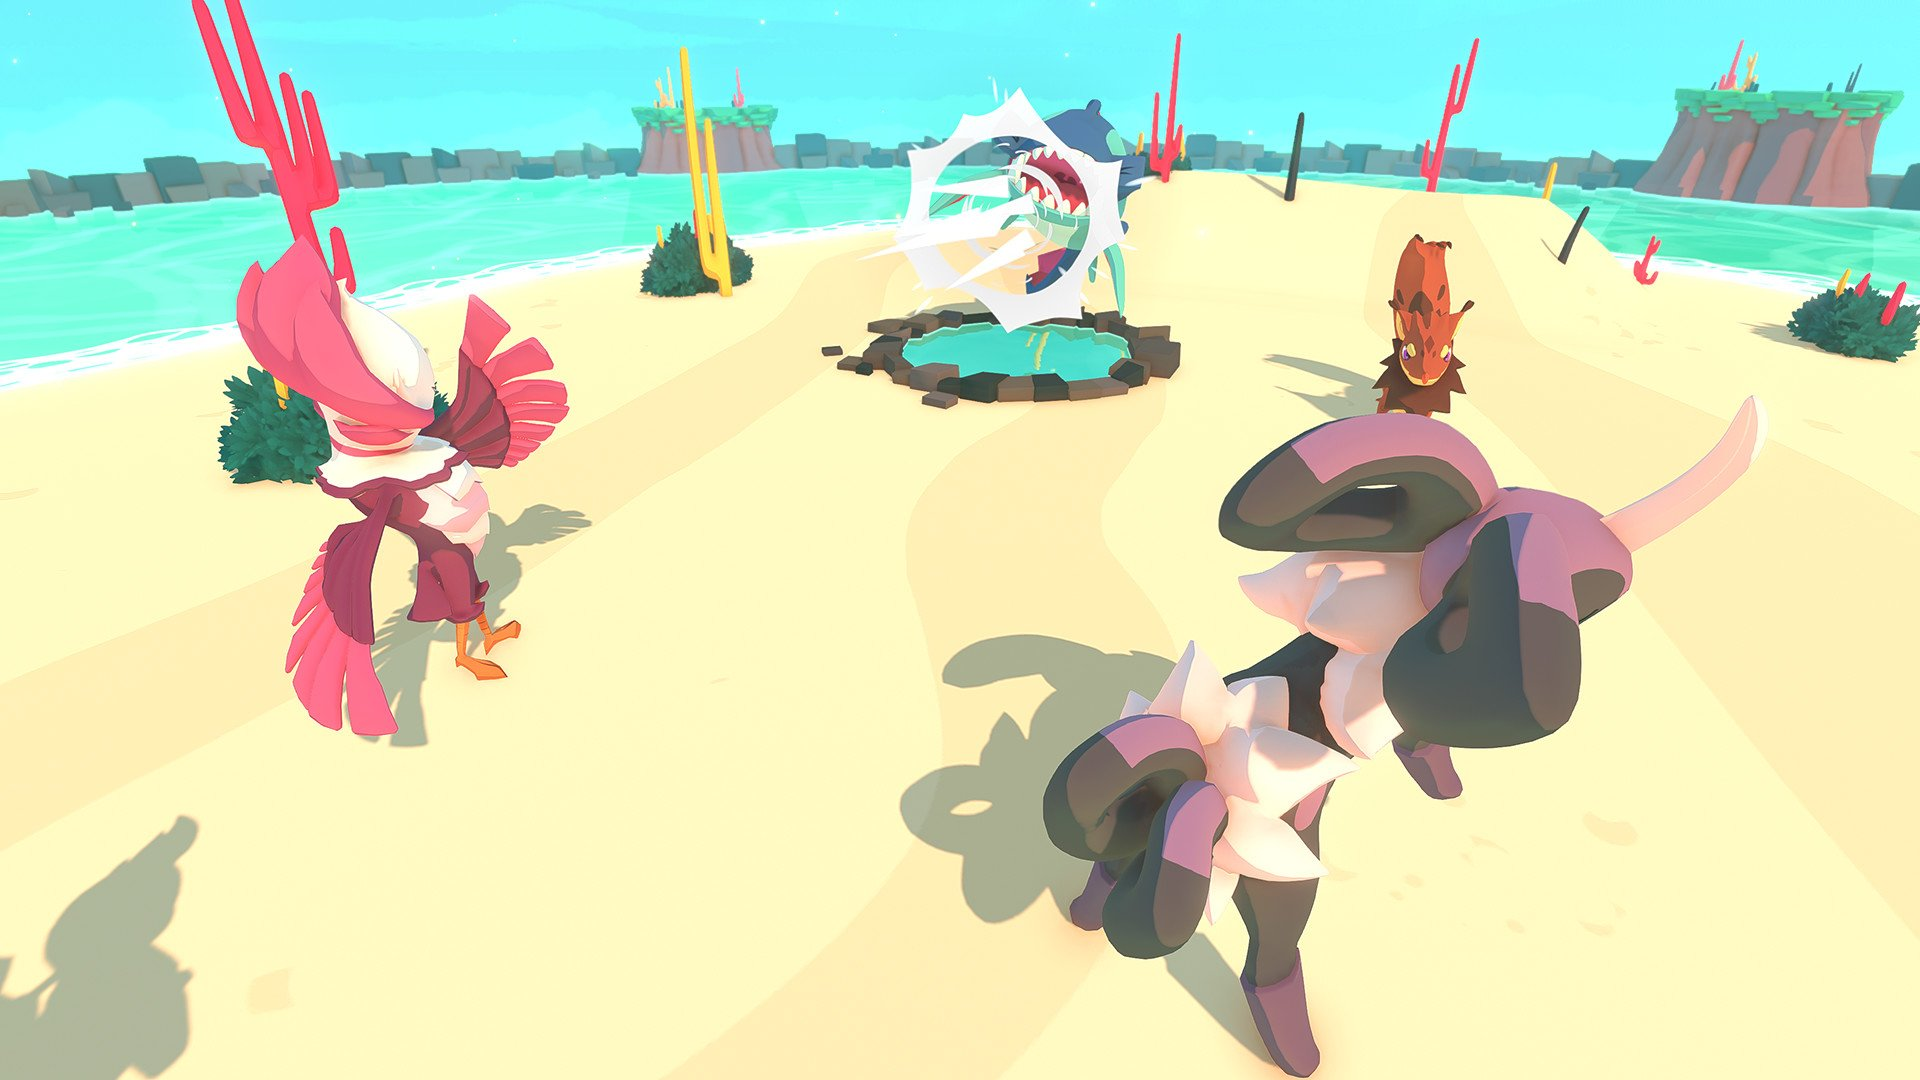 You send two of your Temtem out at a time. Beforehand, you'll want to plan out which Types you need and whether your two Temtem work well together based on their Traits.